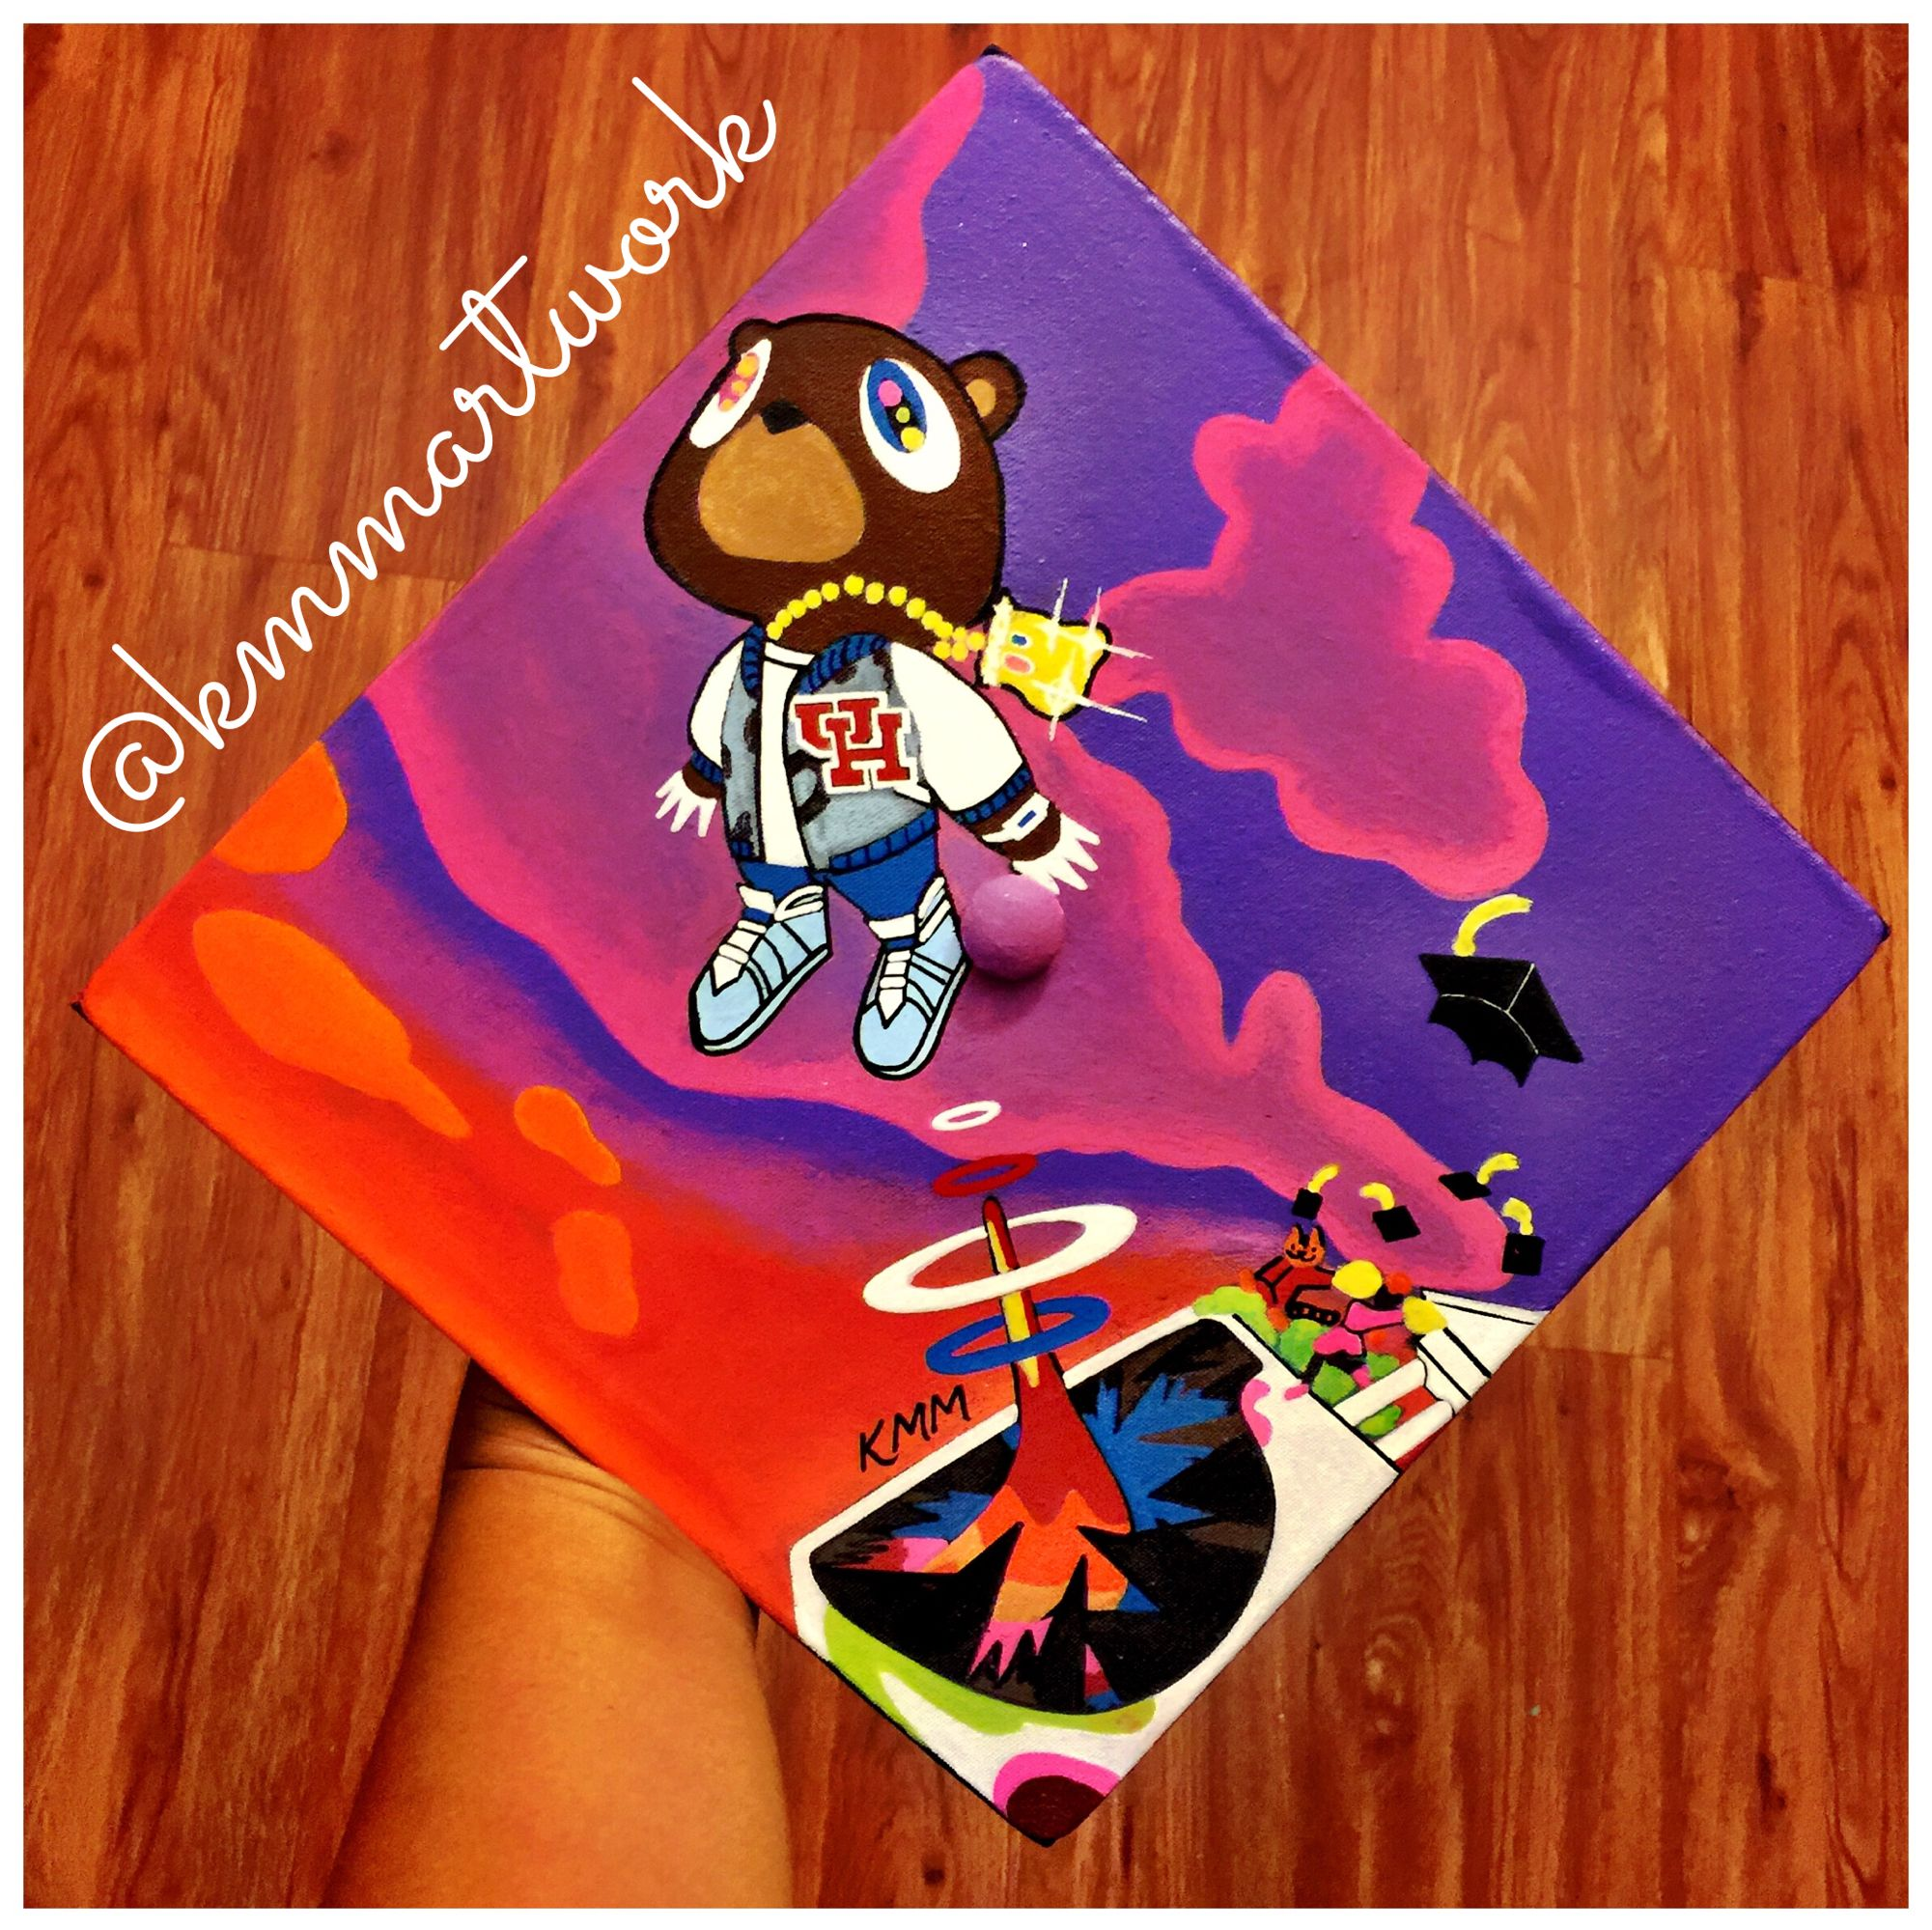 Graduation Cap Kanye West Graduation Album Cover University Of Houston Kmm Artwork Ha Graduation Album Graduation Cap Drawing Kanye West Graduation Cap